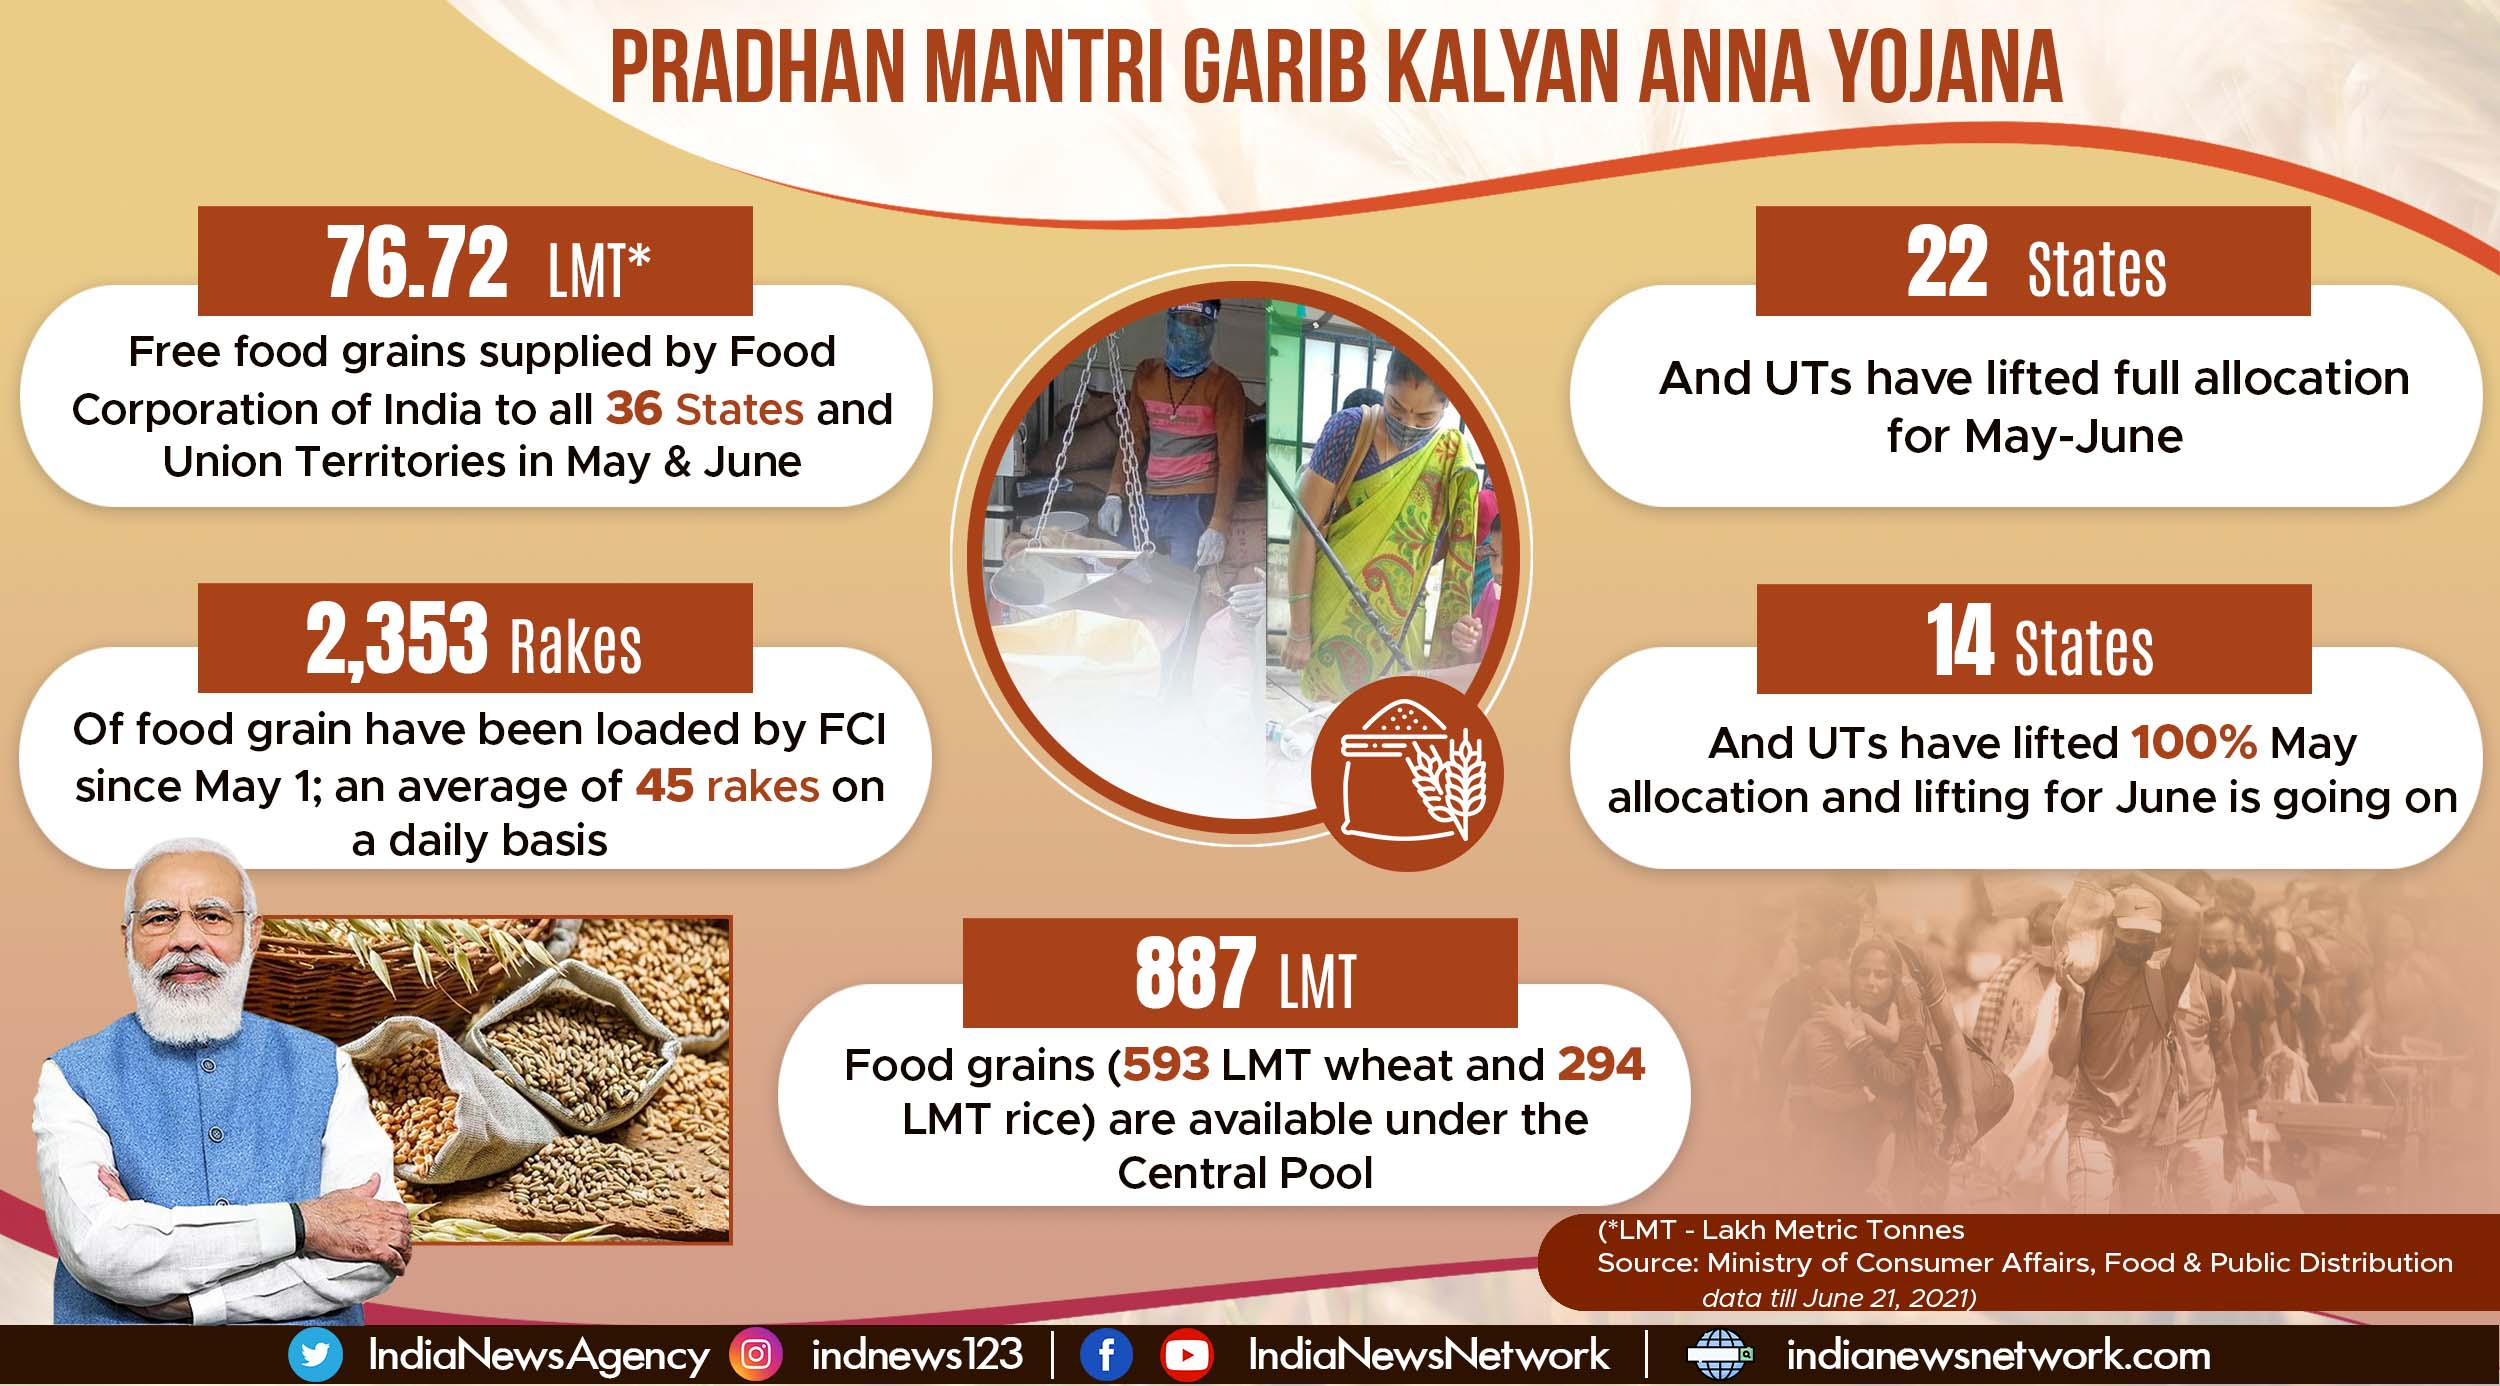 Food Corporation of India continues supply of free food grains to all 36 States & UTs